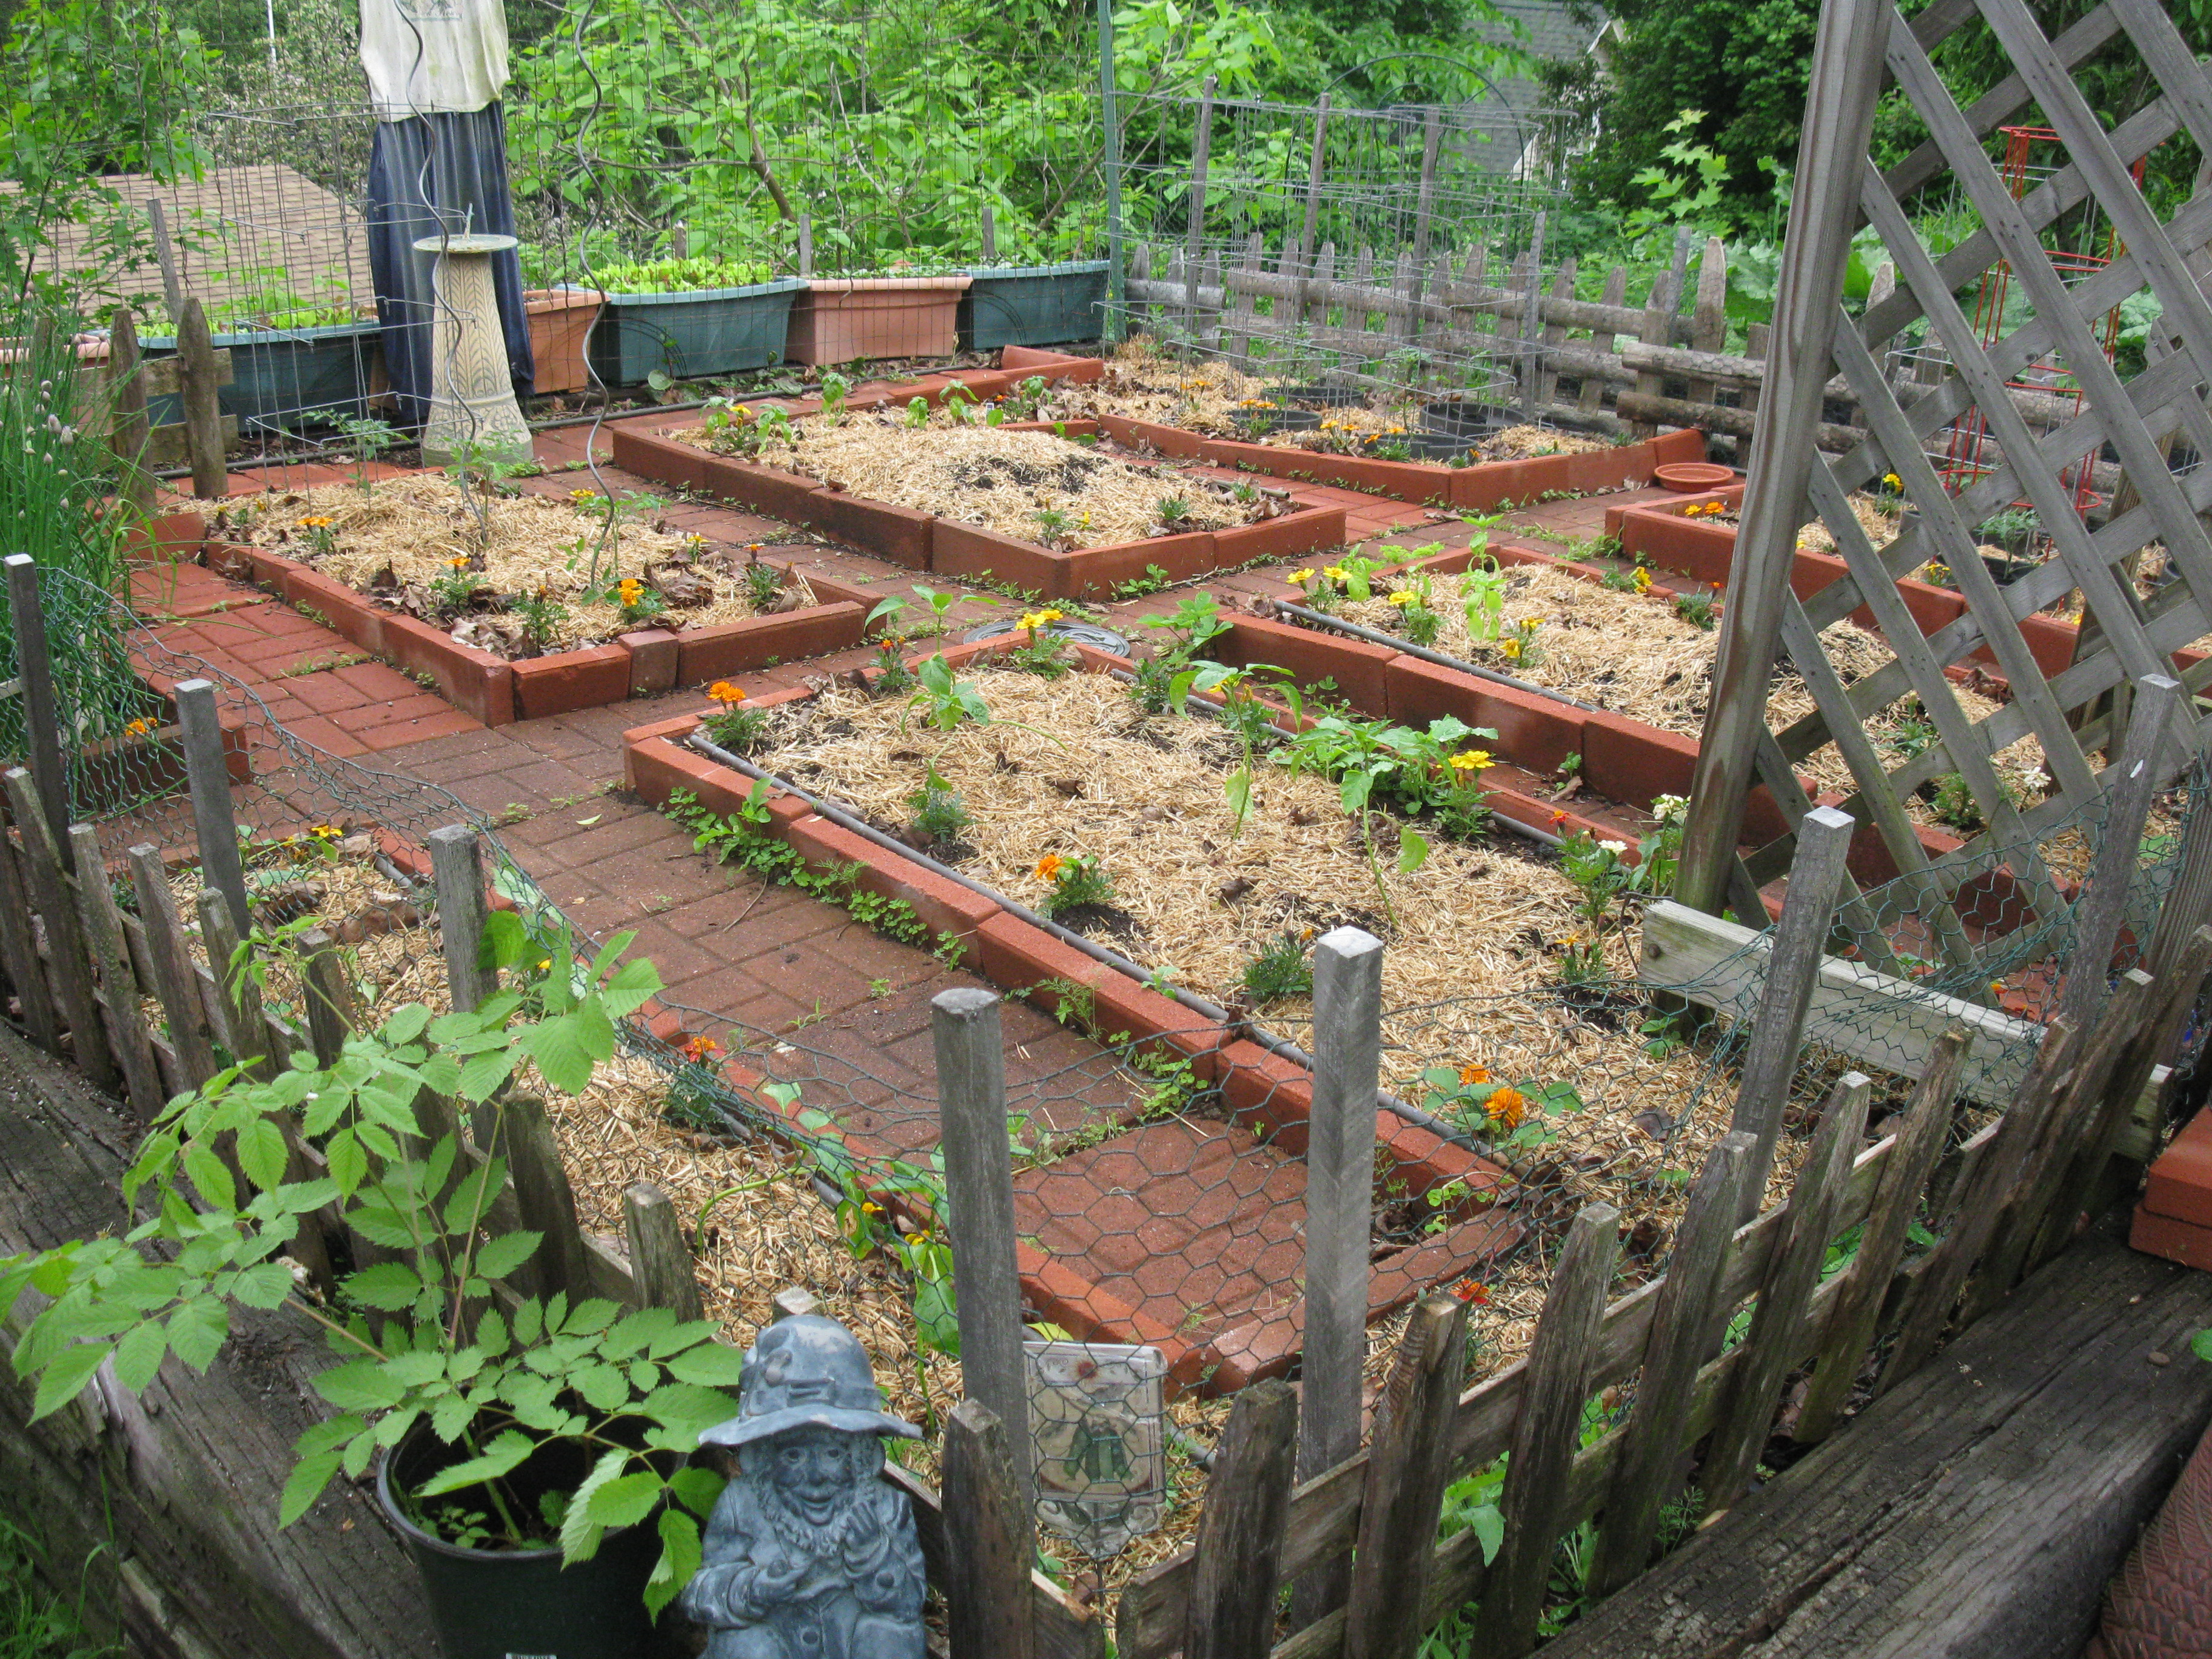 vegetable gardening in new england dreaming and planning early spring garden - Vegetable Garden Ideas New England